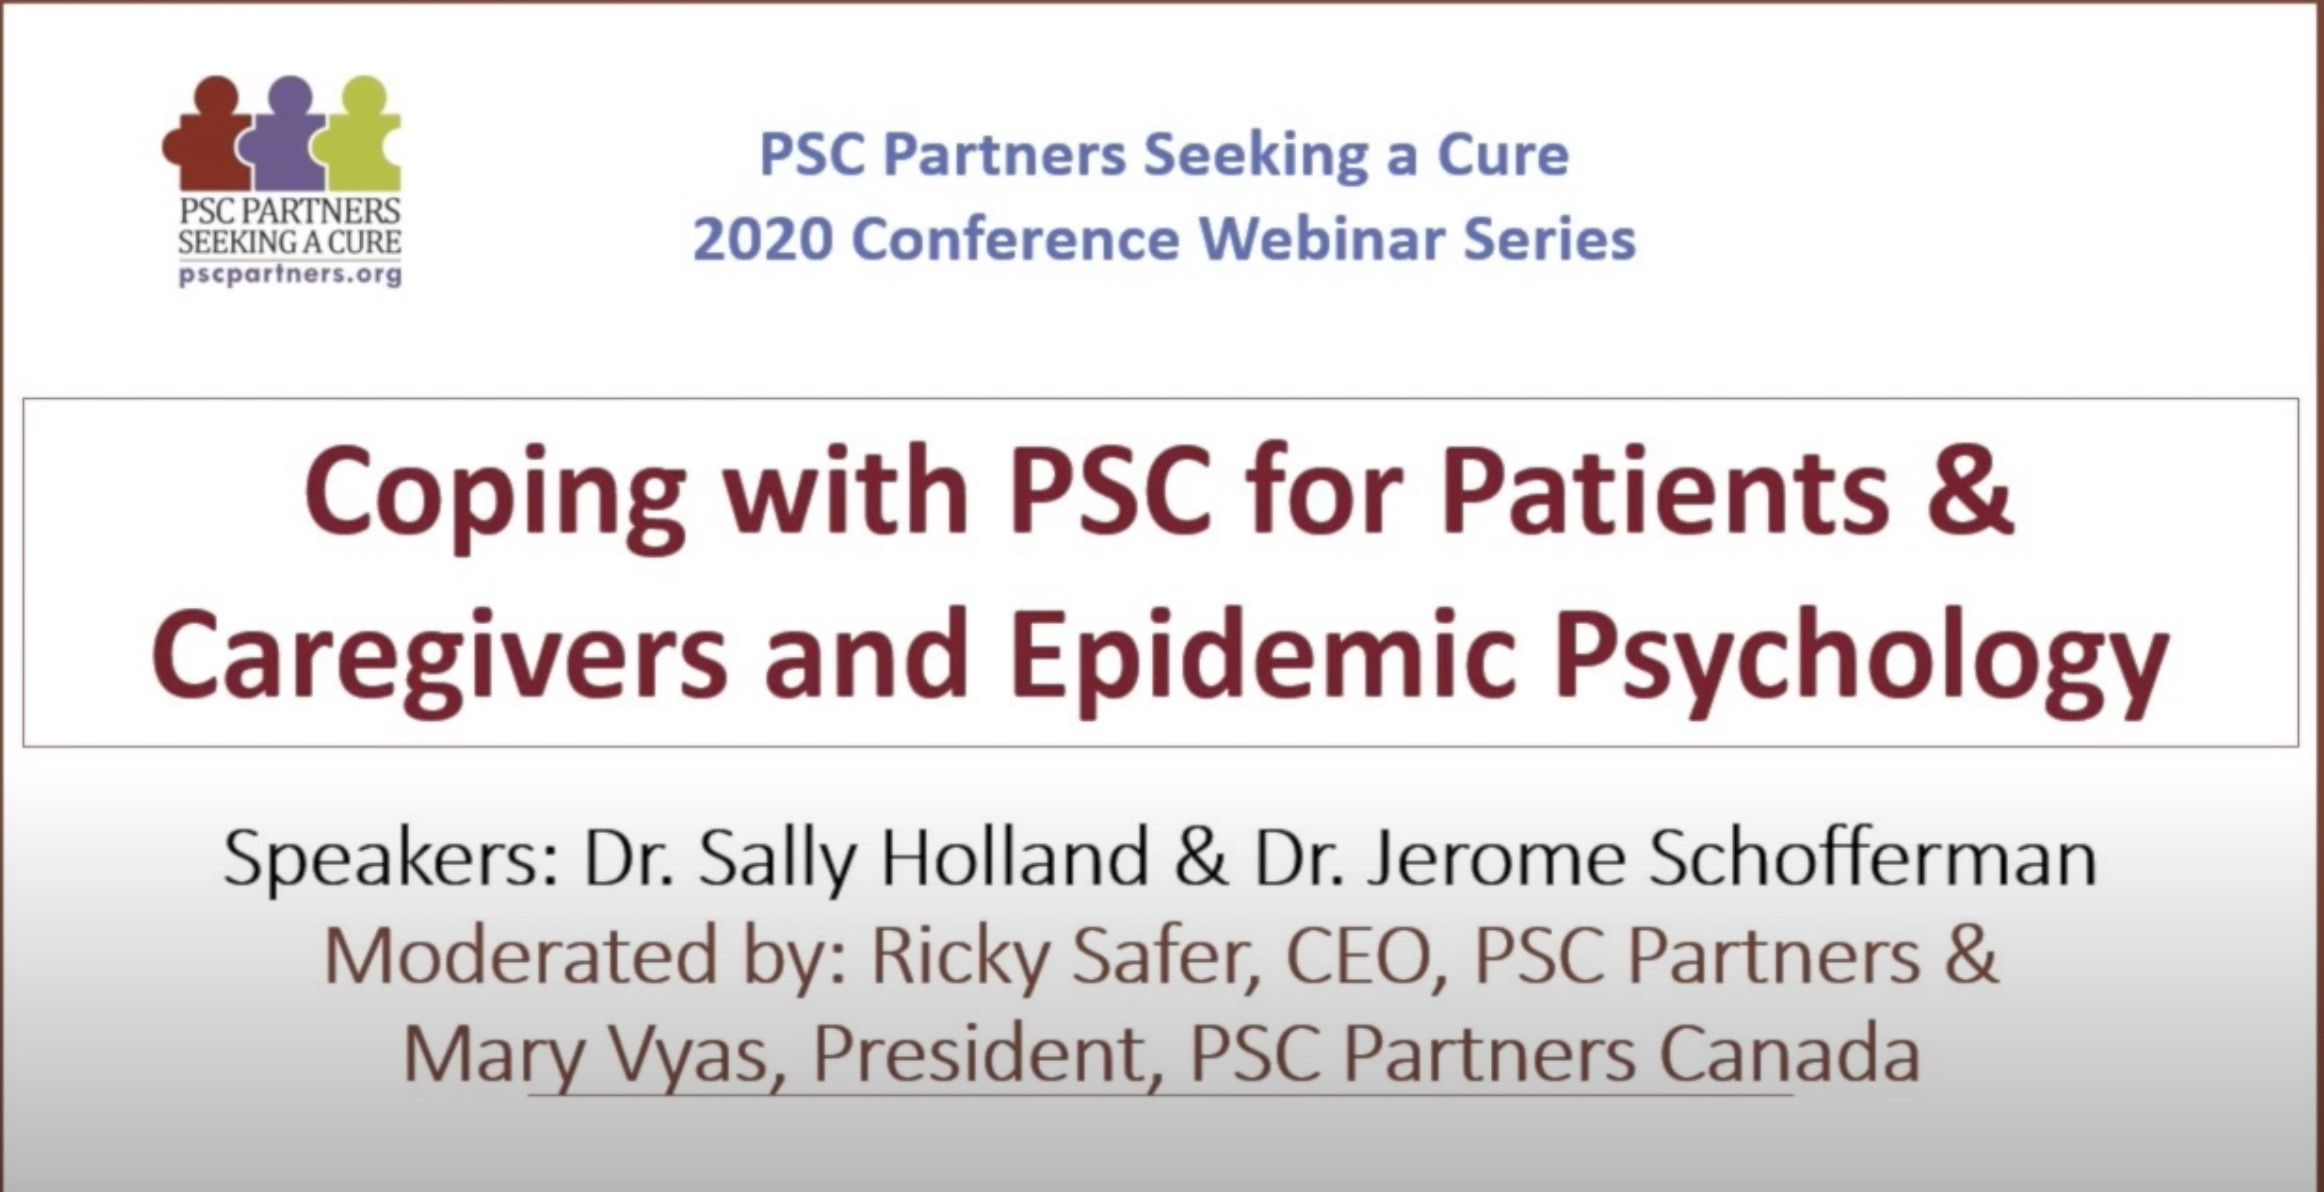 Coping with PSC and Epidemic Psychology